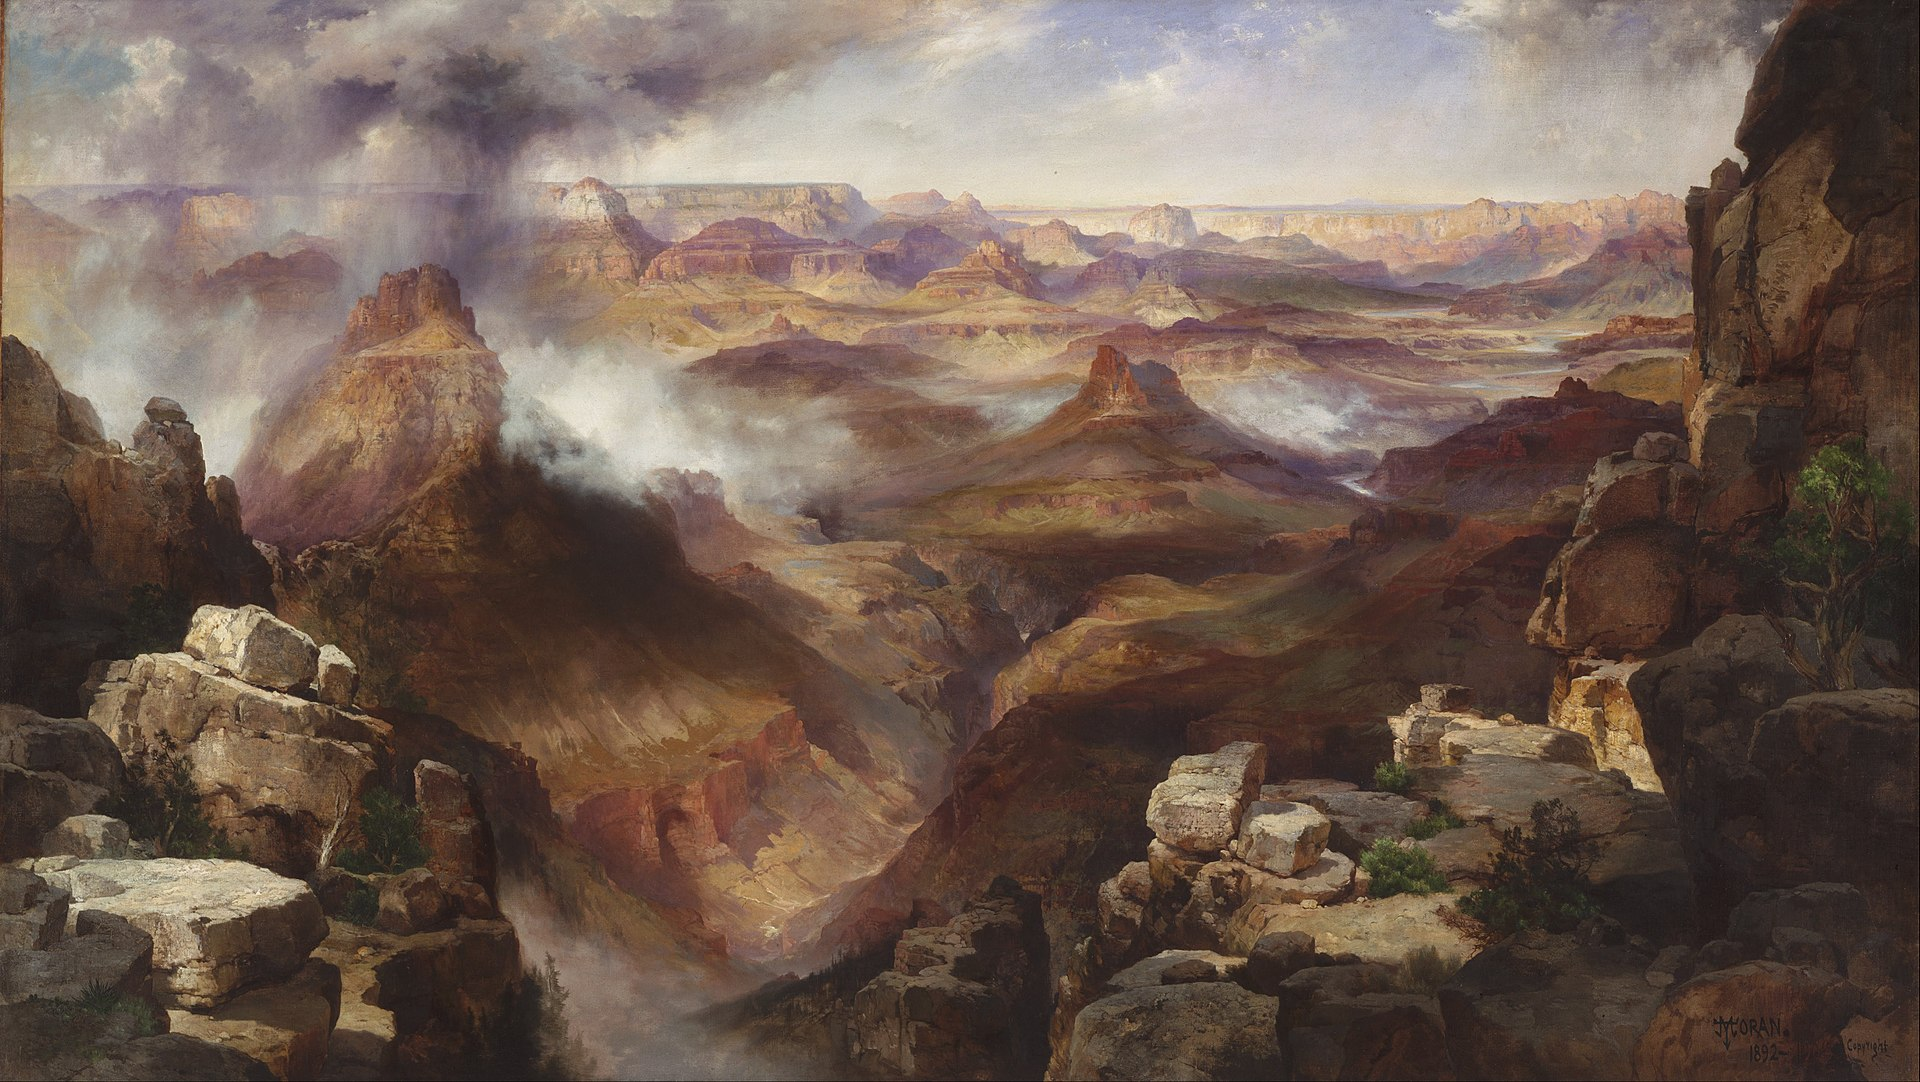 landscape American painter Thomas Moran